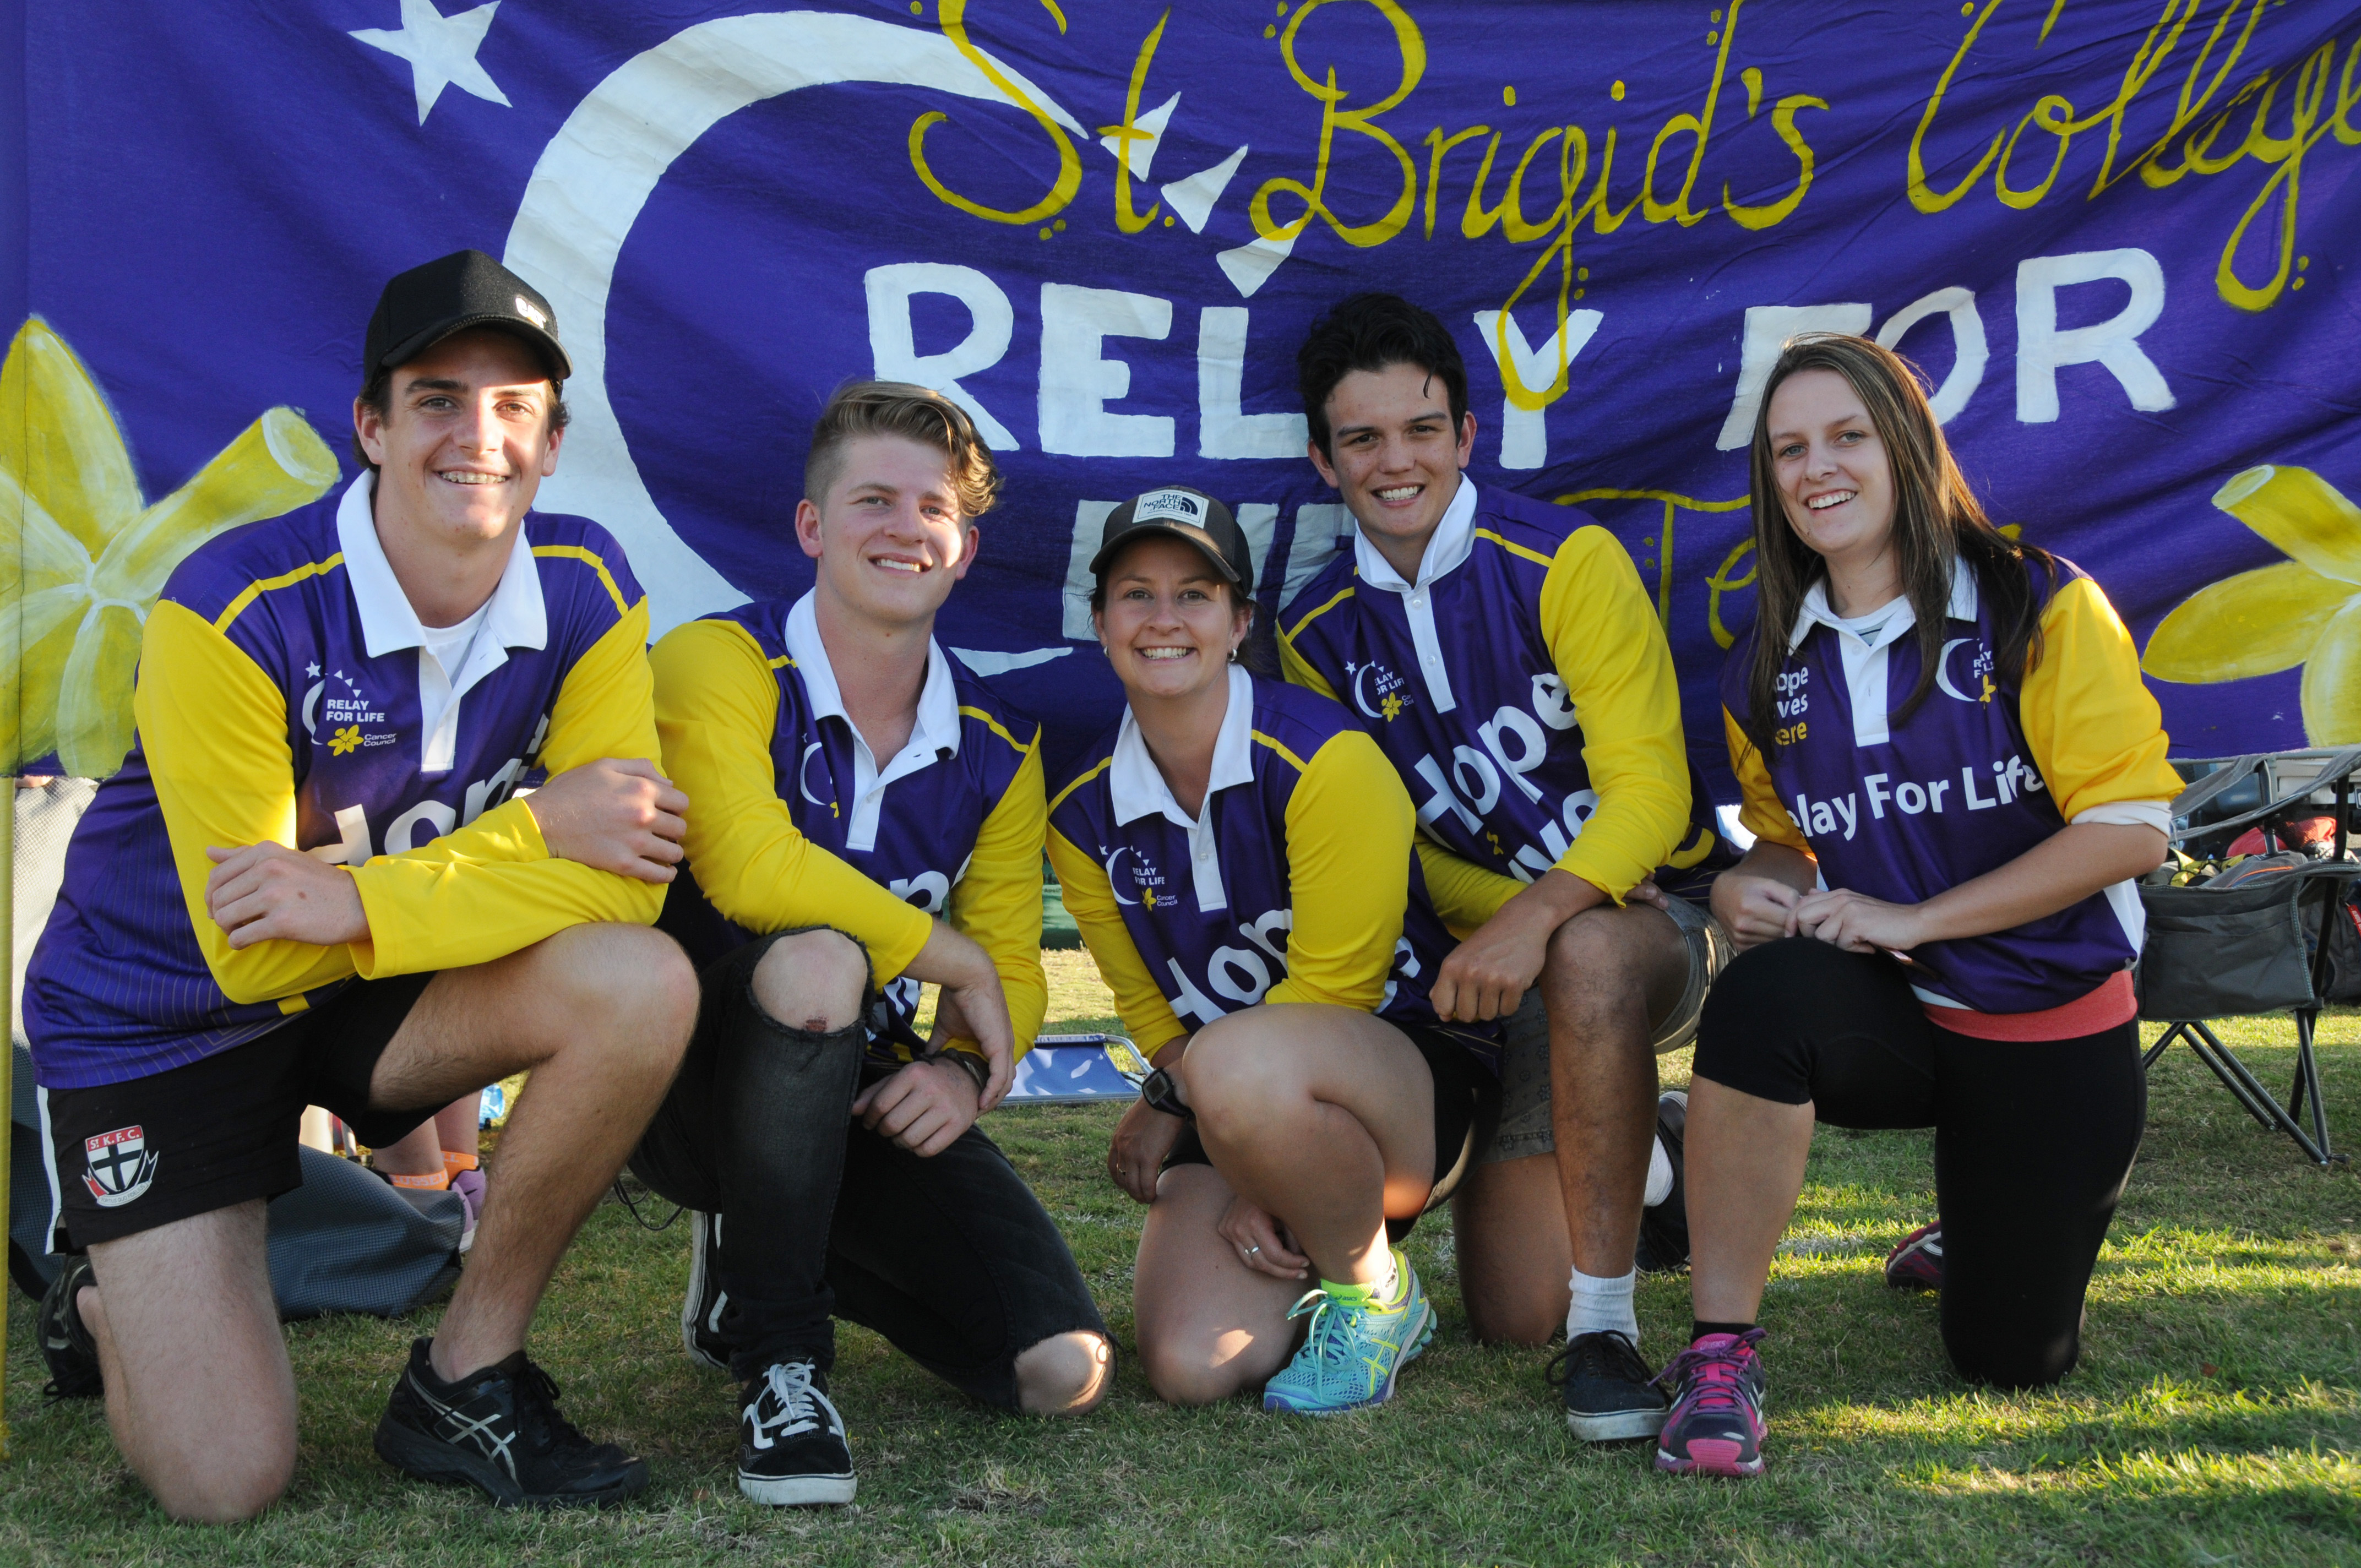 Image - Horsham and District Relay for Life, 170317. St Brigid